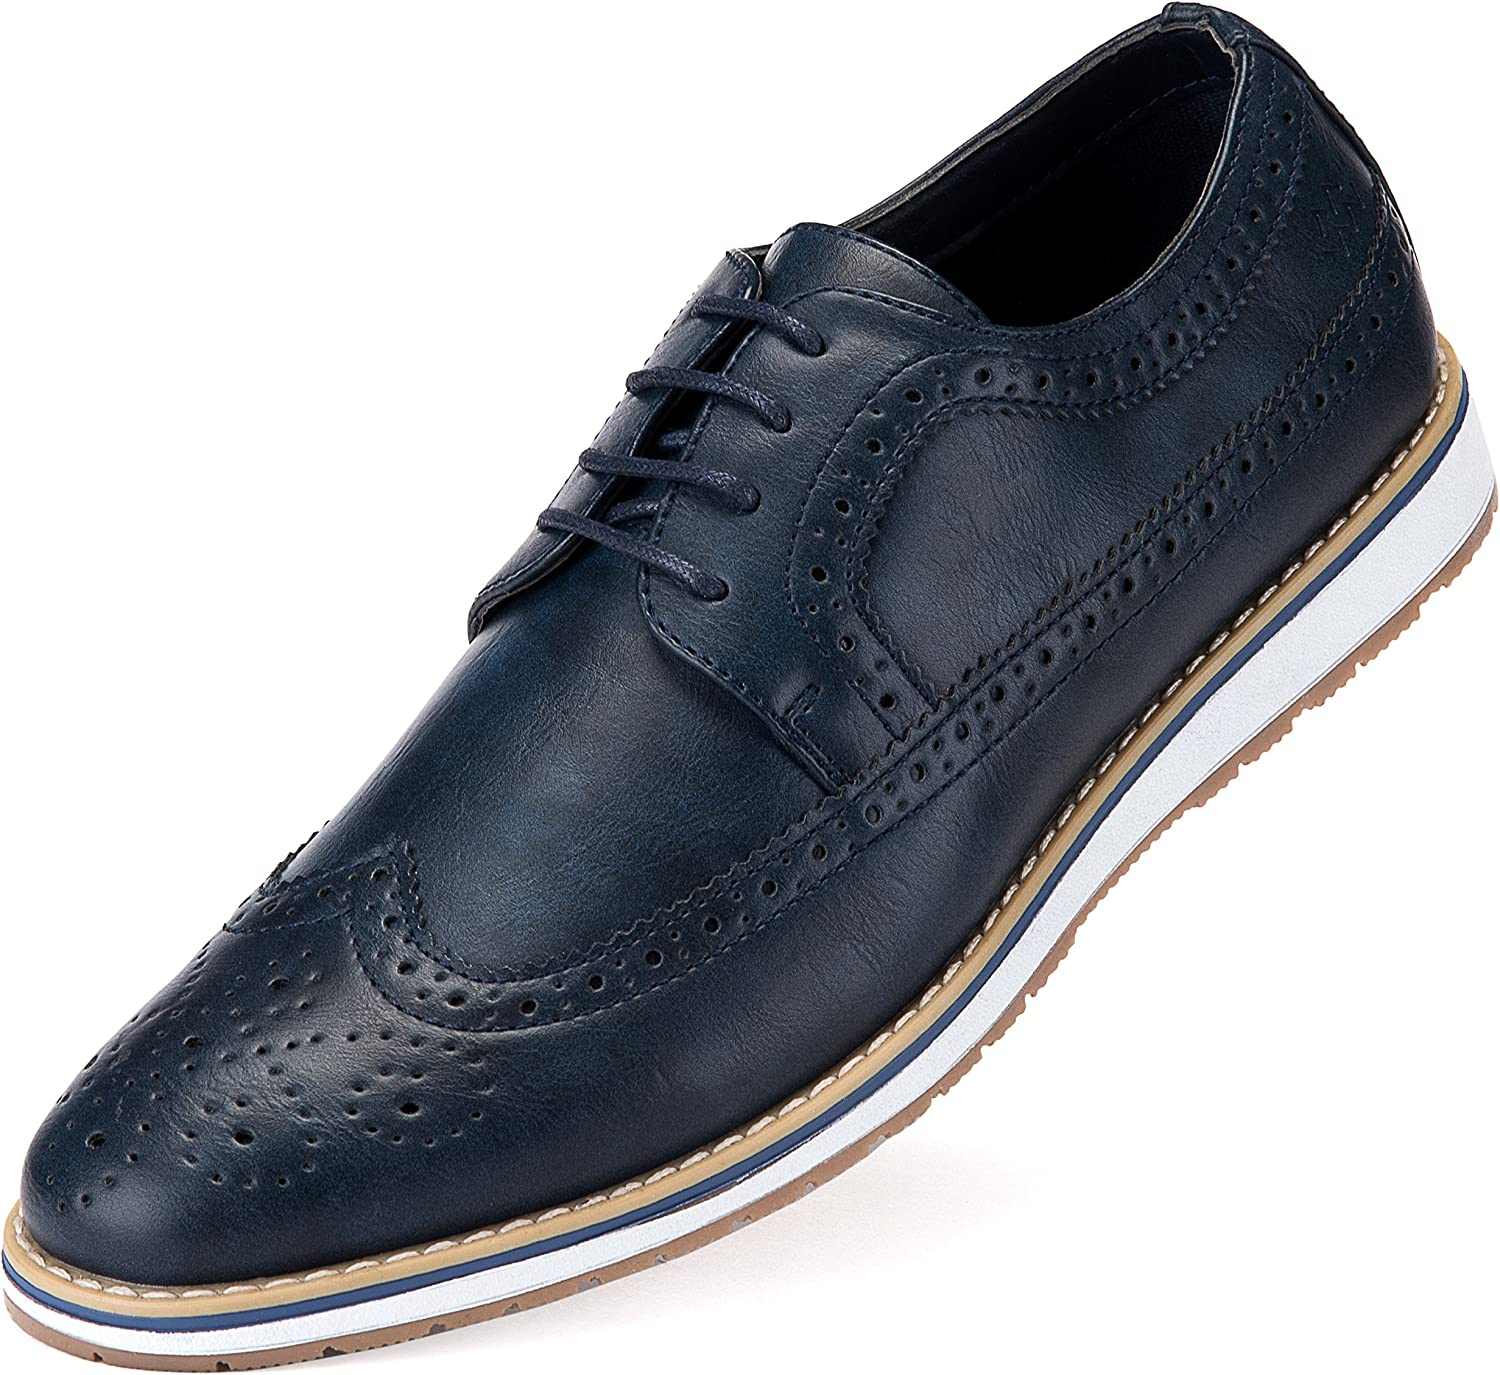 Mio Marino Everyday Casual Wingtip Oxford Shoes for Men